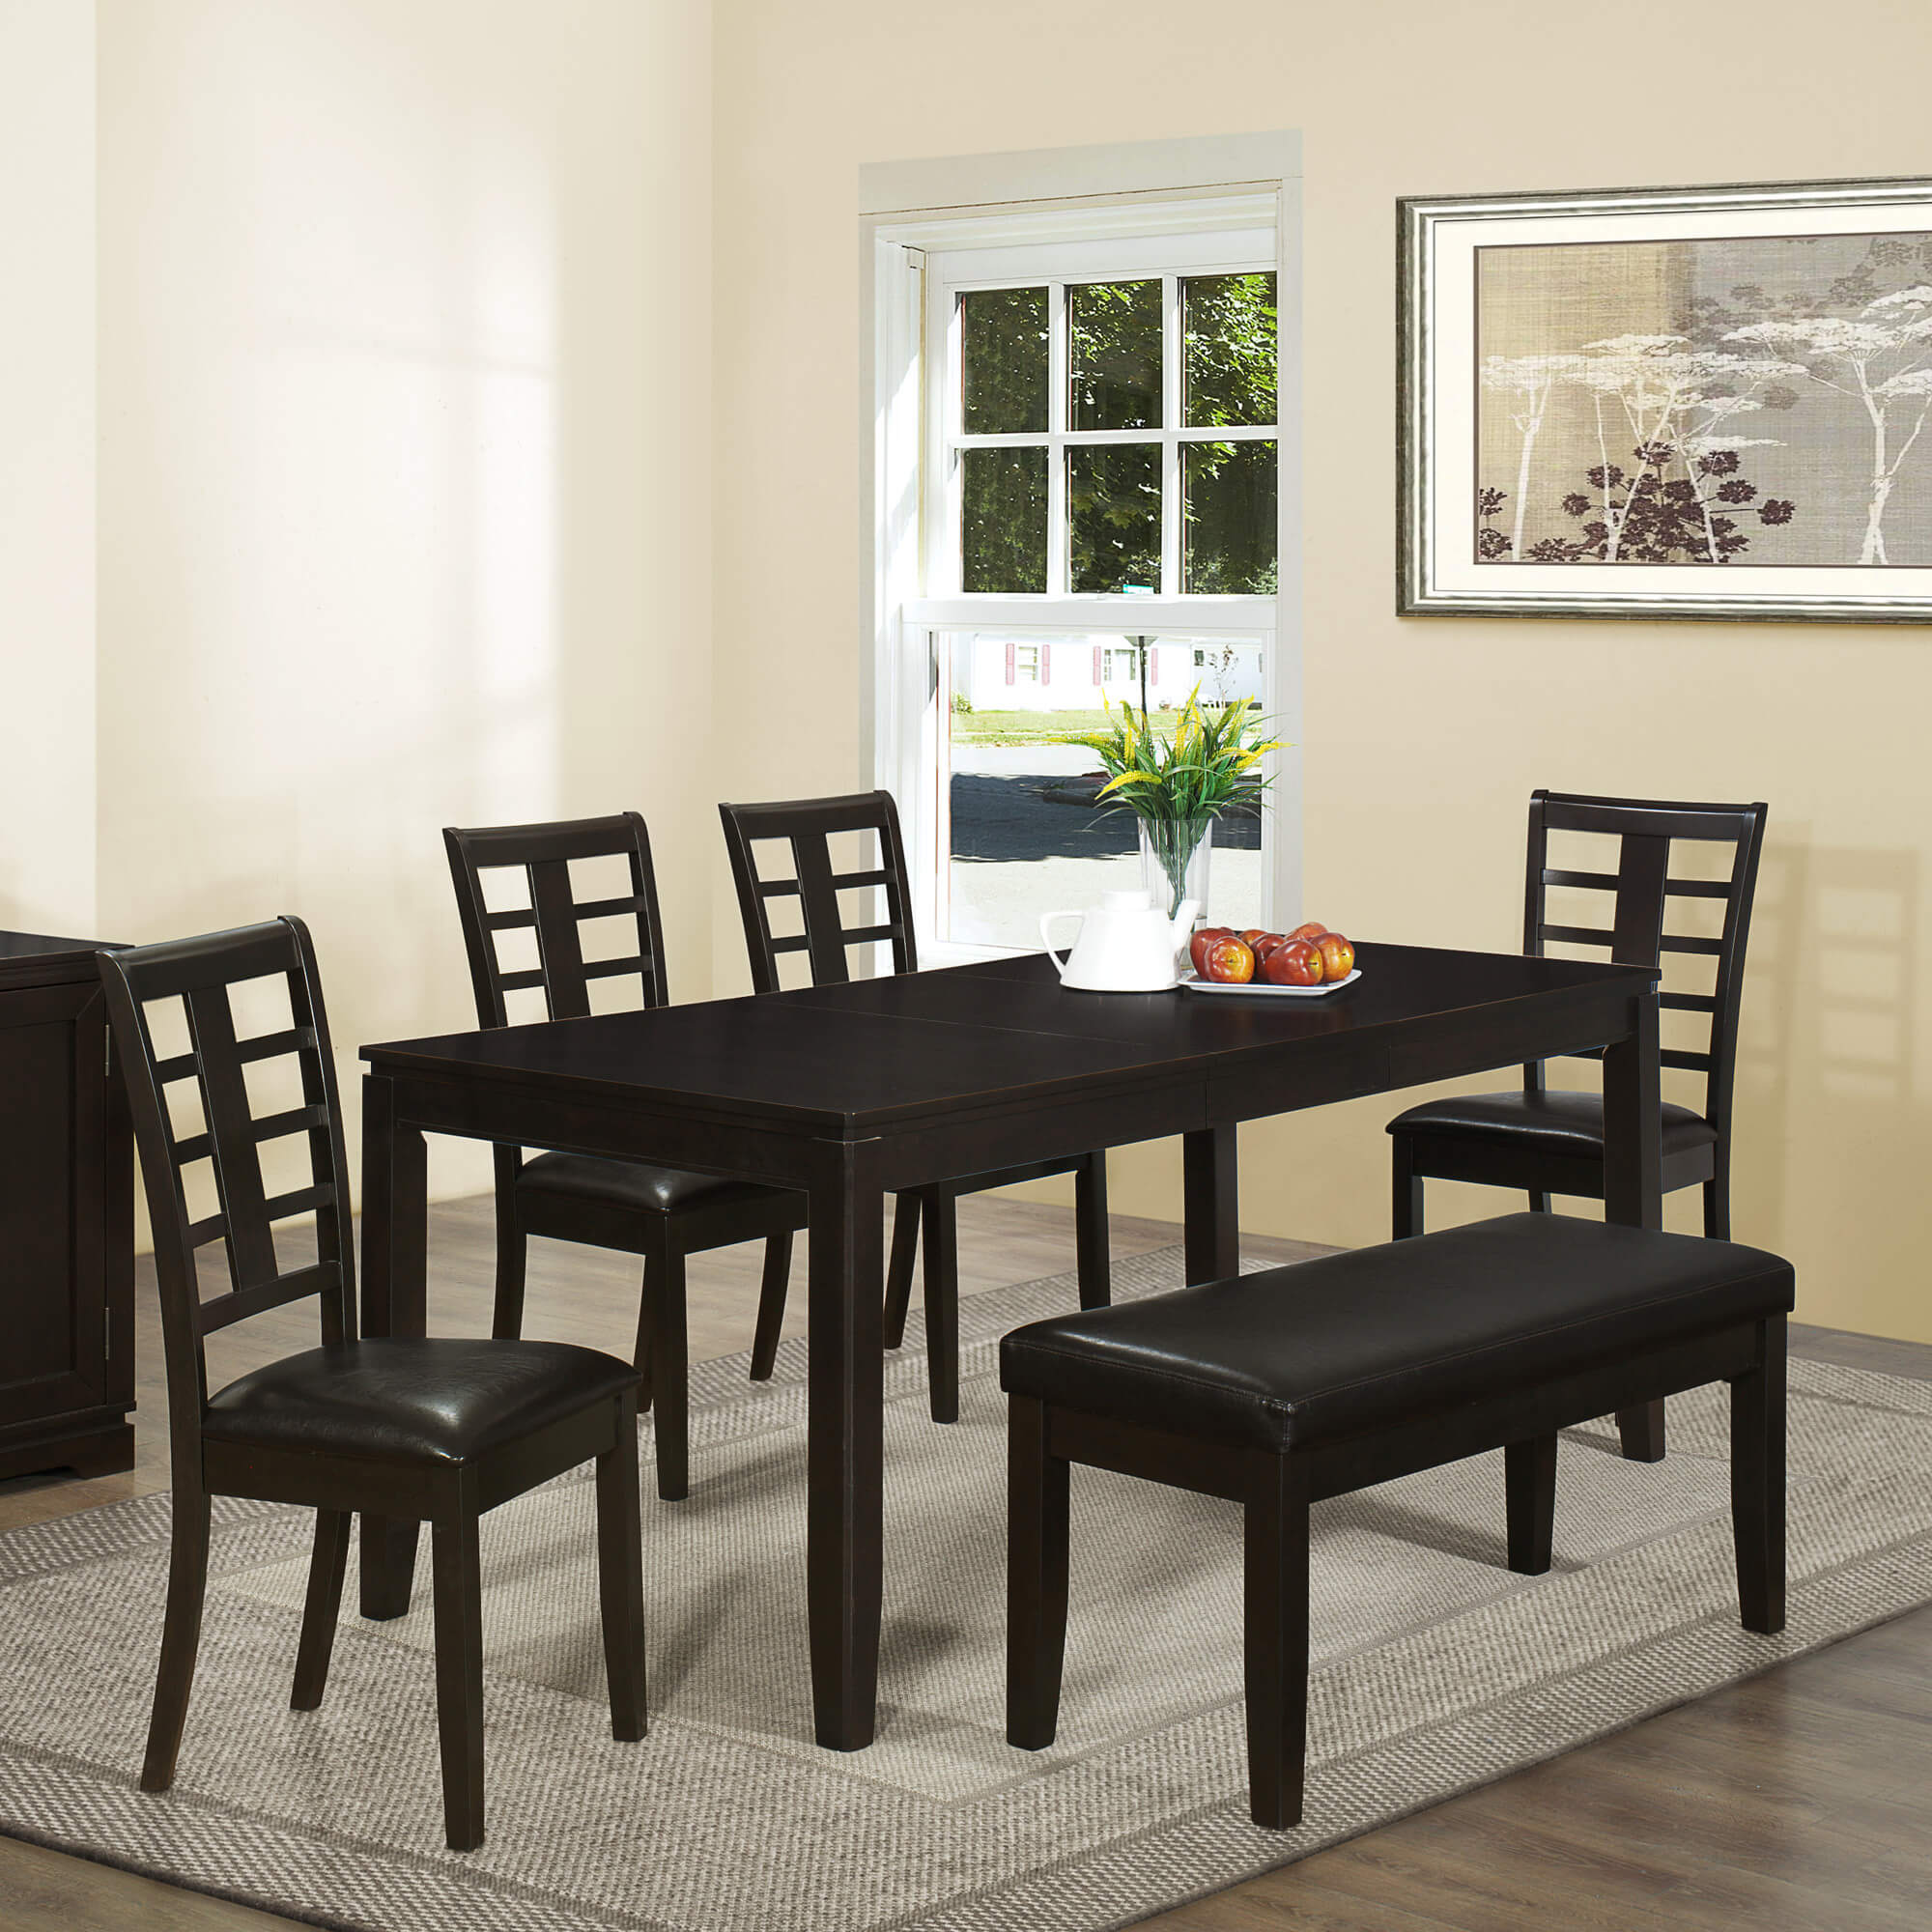 Contemporary Asian Inspired Dining Set With Bench Is A Good Size Being Able  To Accommodate Part 84